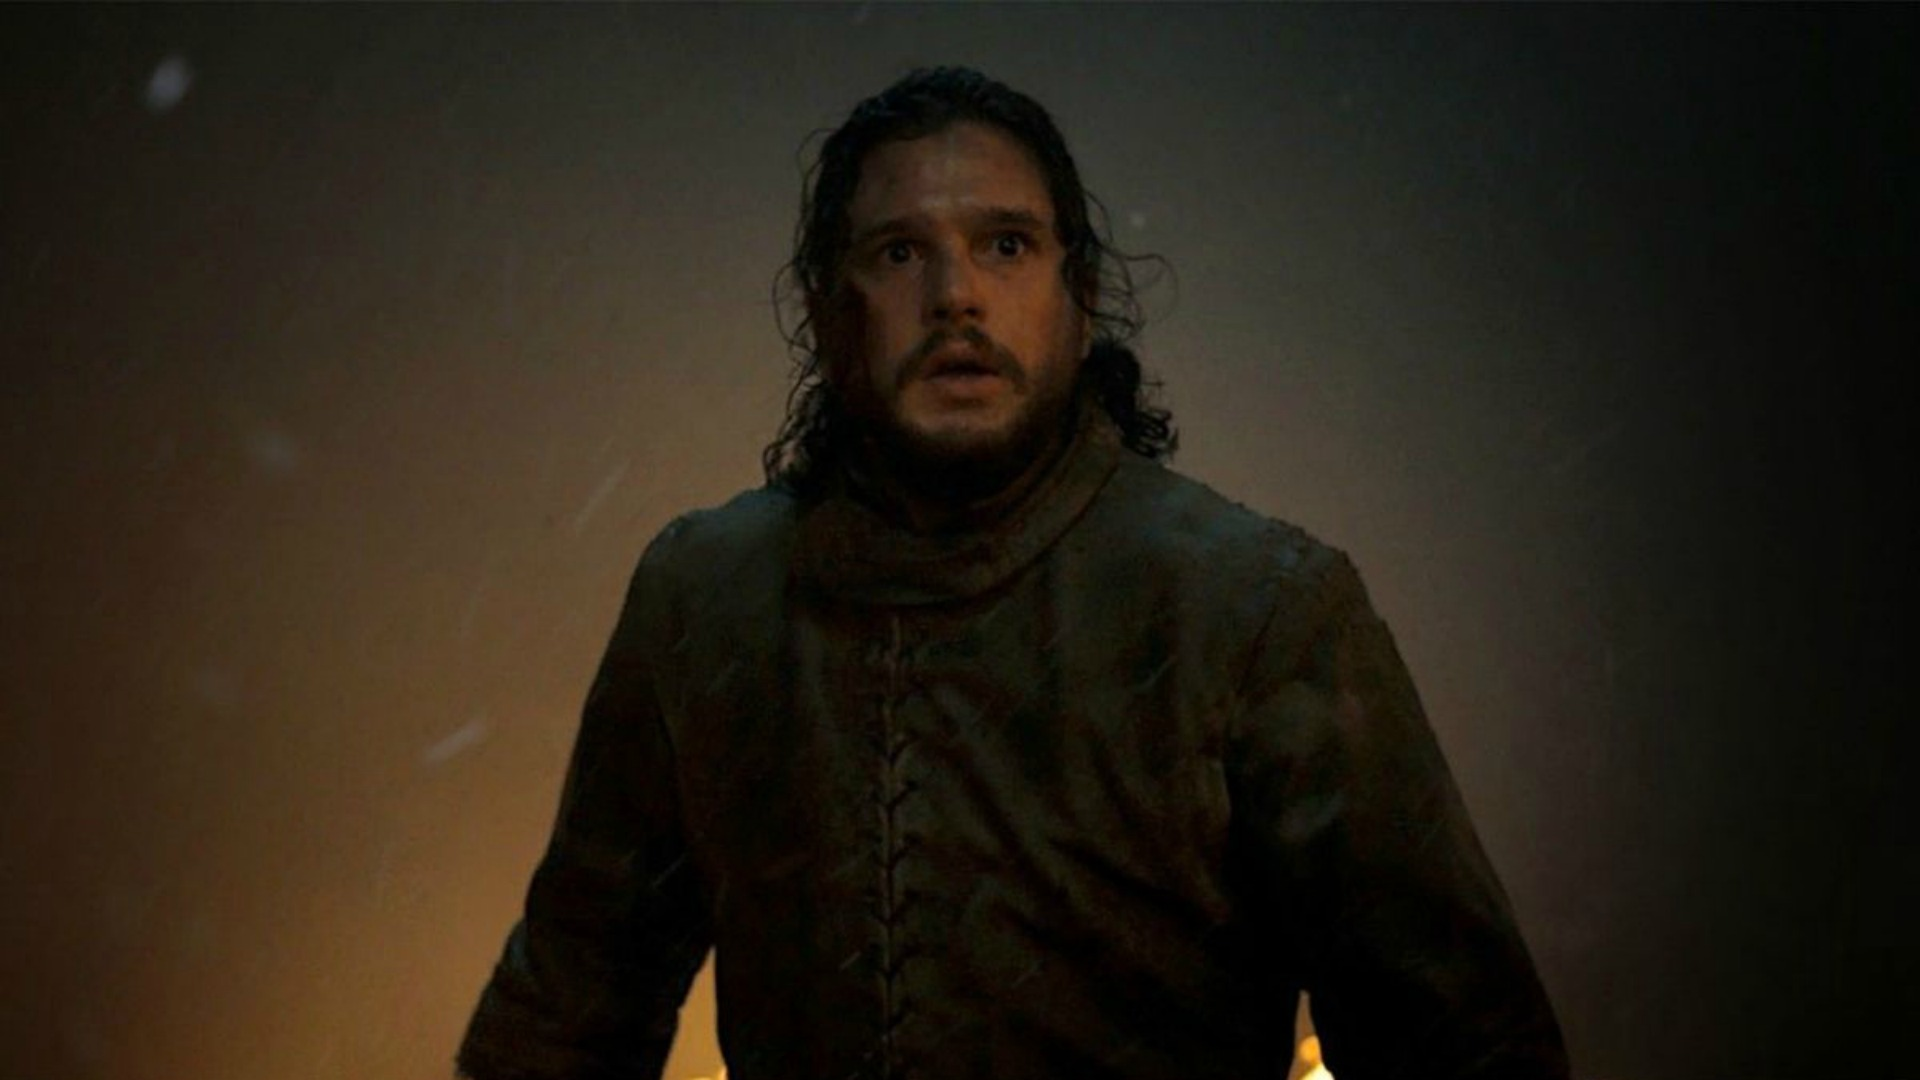 The North Remembers: The Long Night